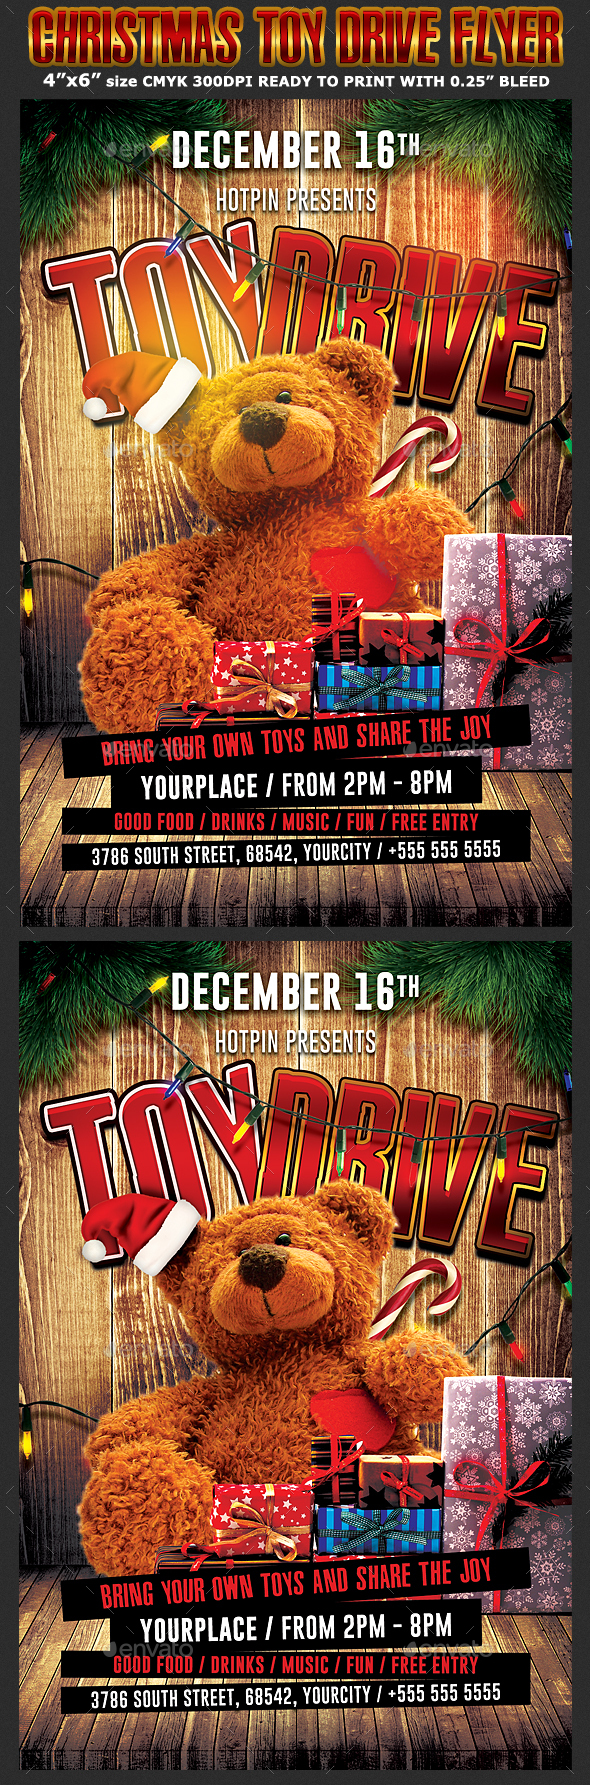 Christmas Toy Drive Flyer Template - Holidays Events